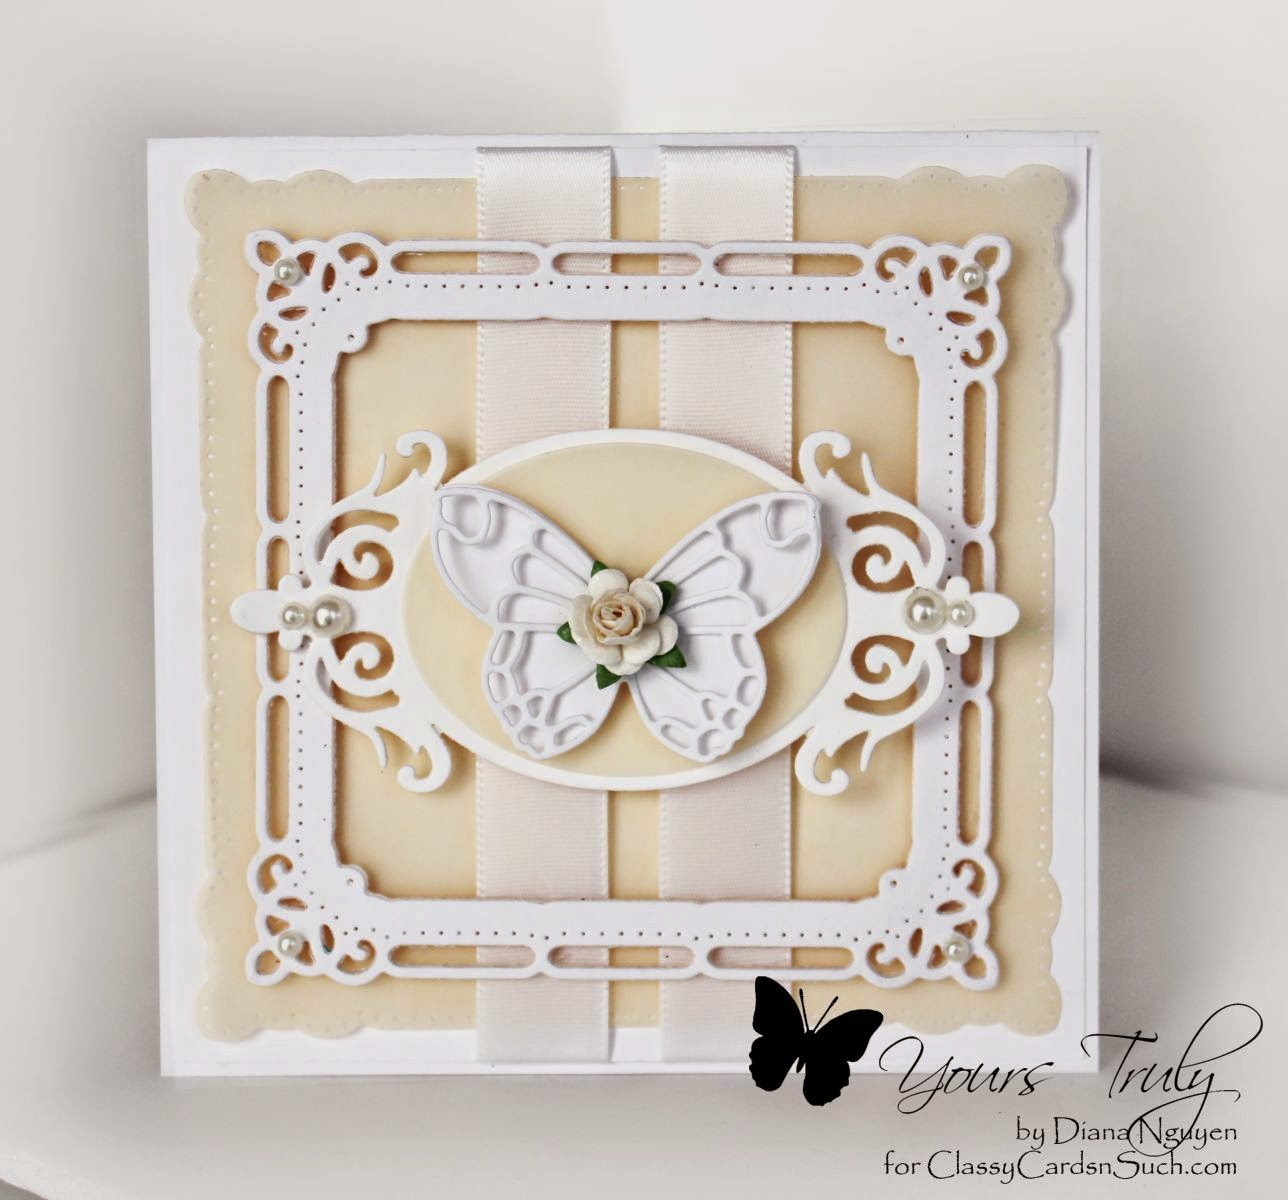 Diana Nguyen, butterfly, majestic squares, neutral, card